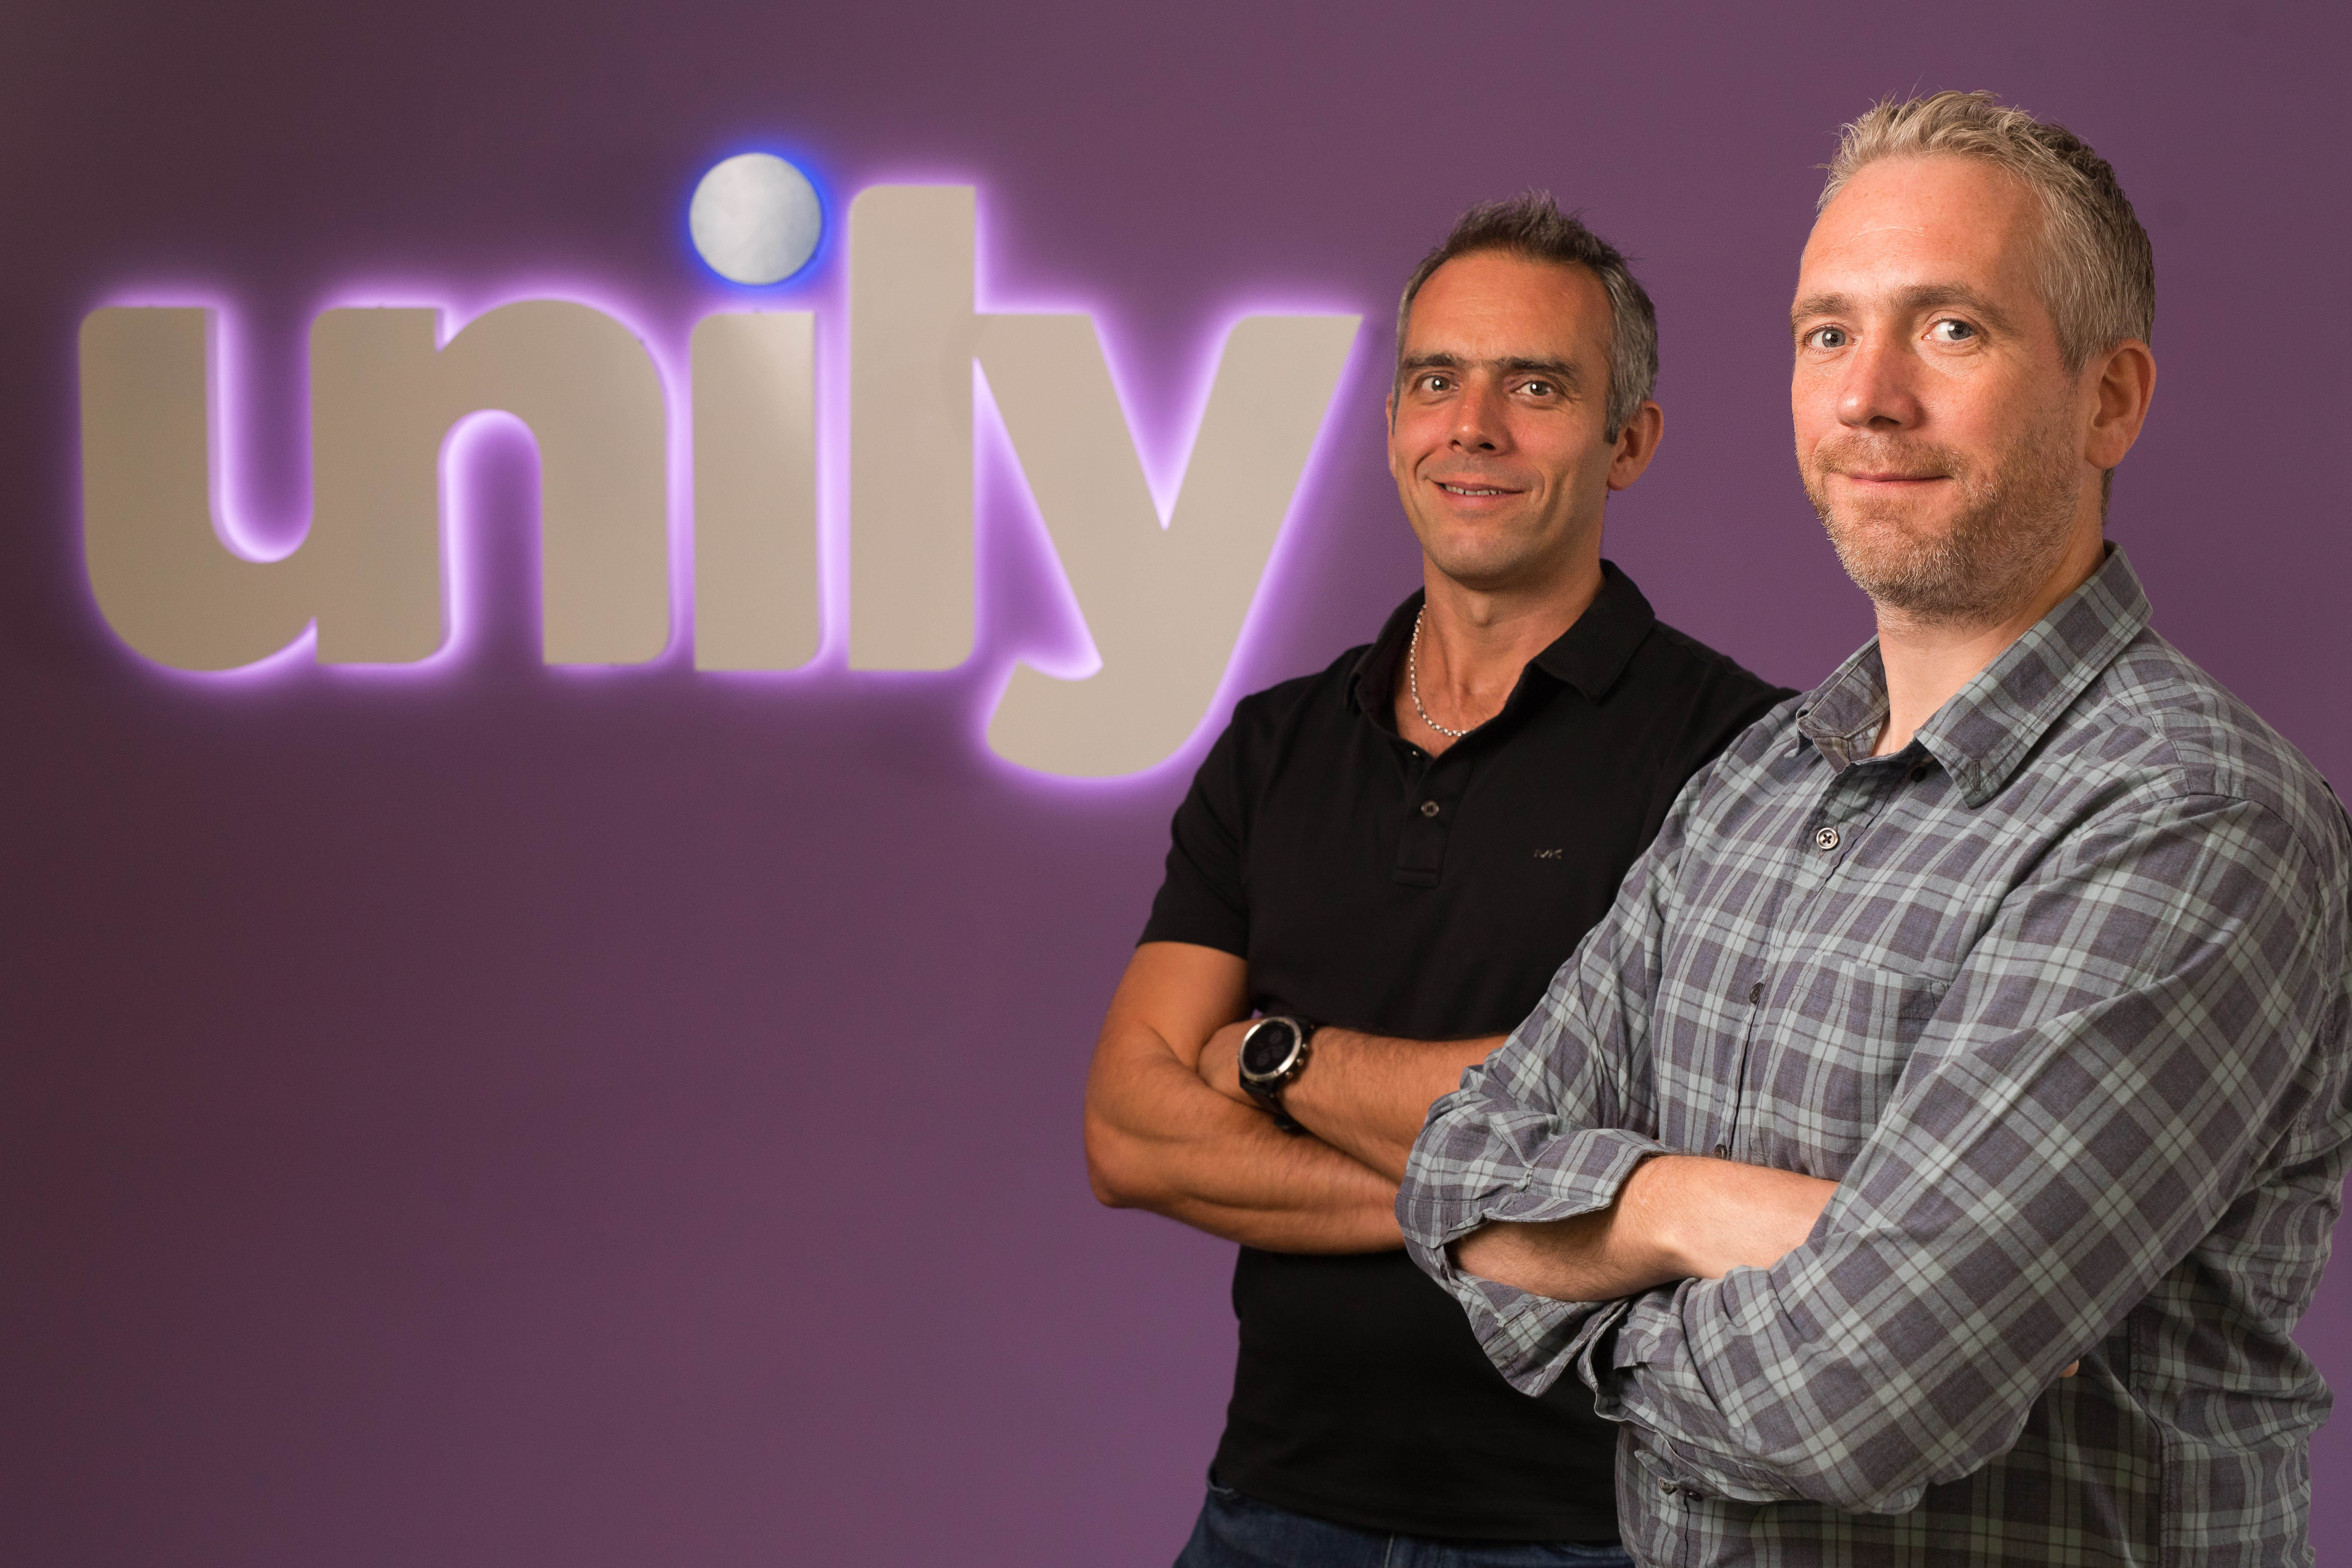 UK tech firm Unily secures $68m investment